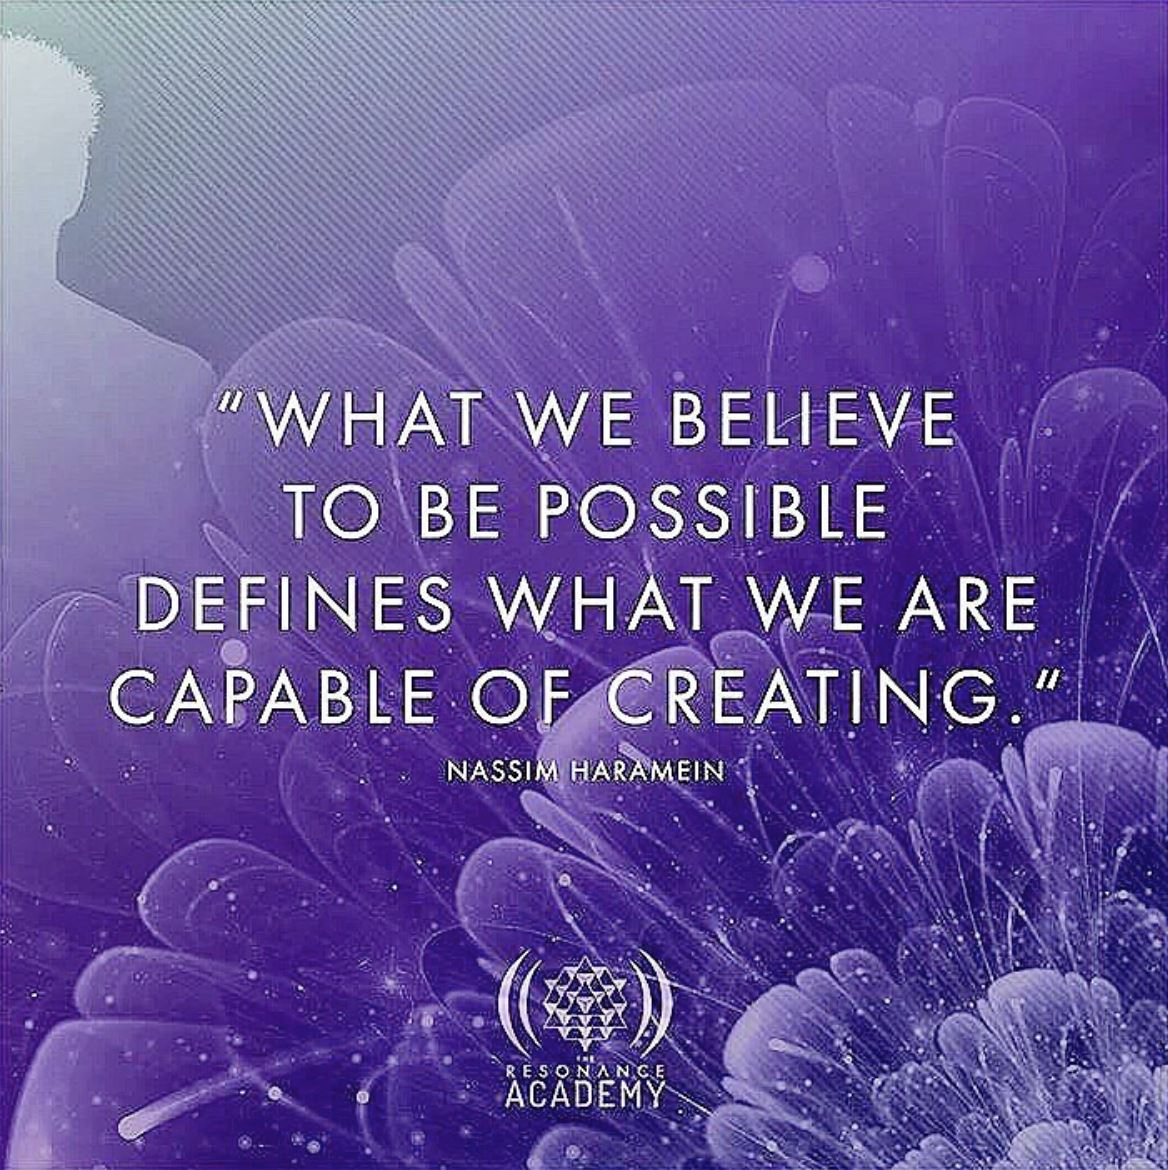 What we believe to be possible defines what we are capable of creating